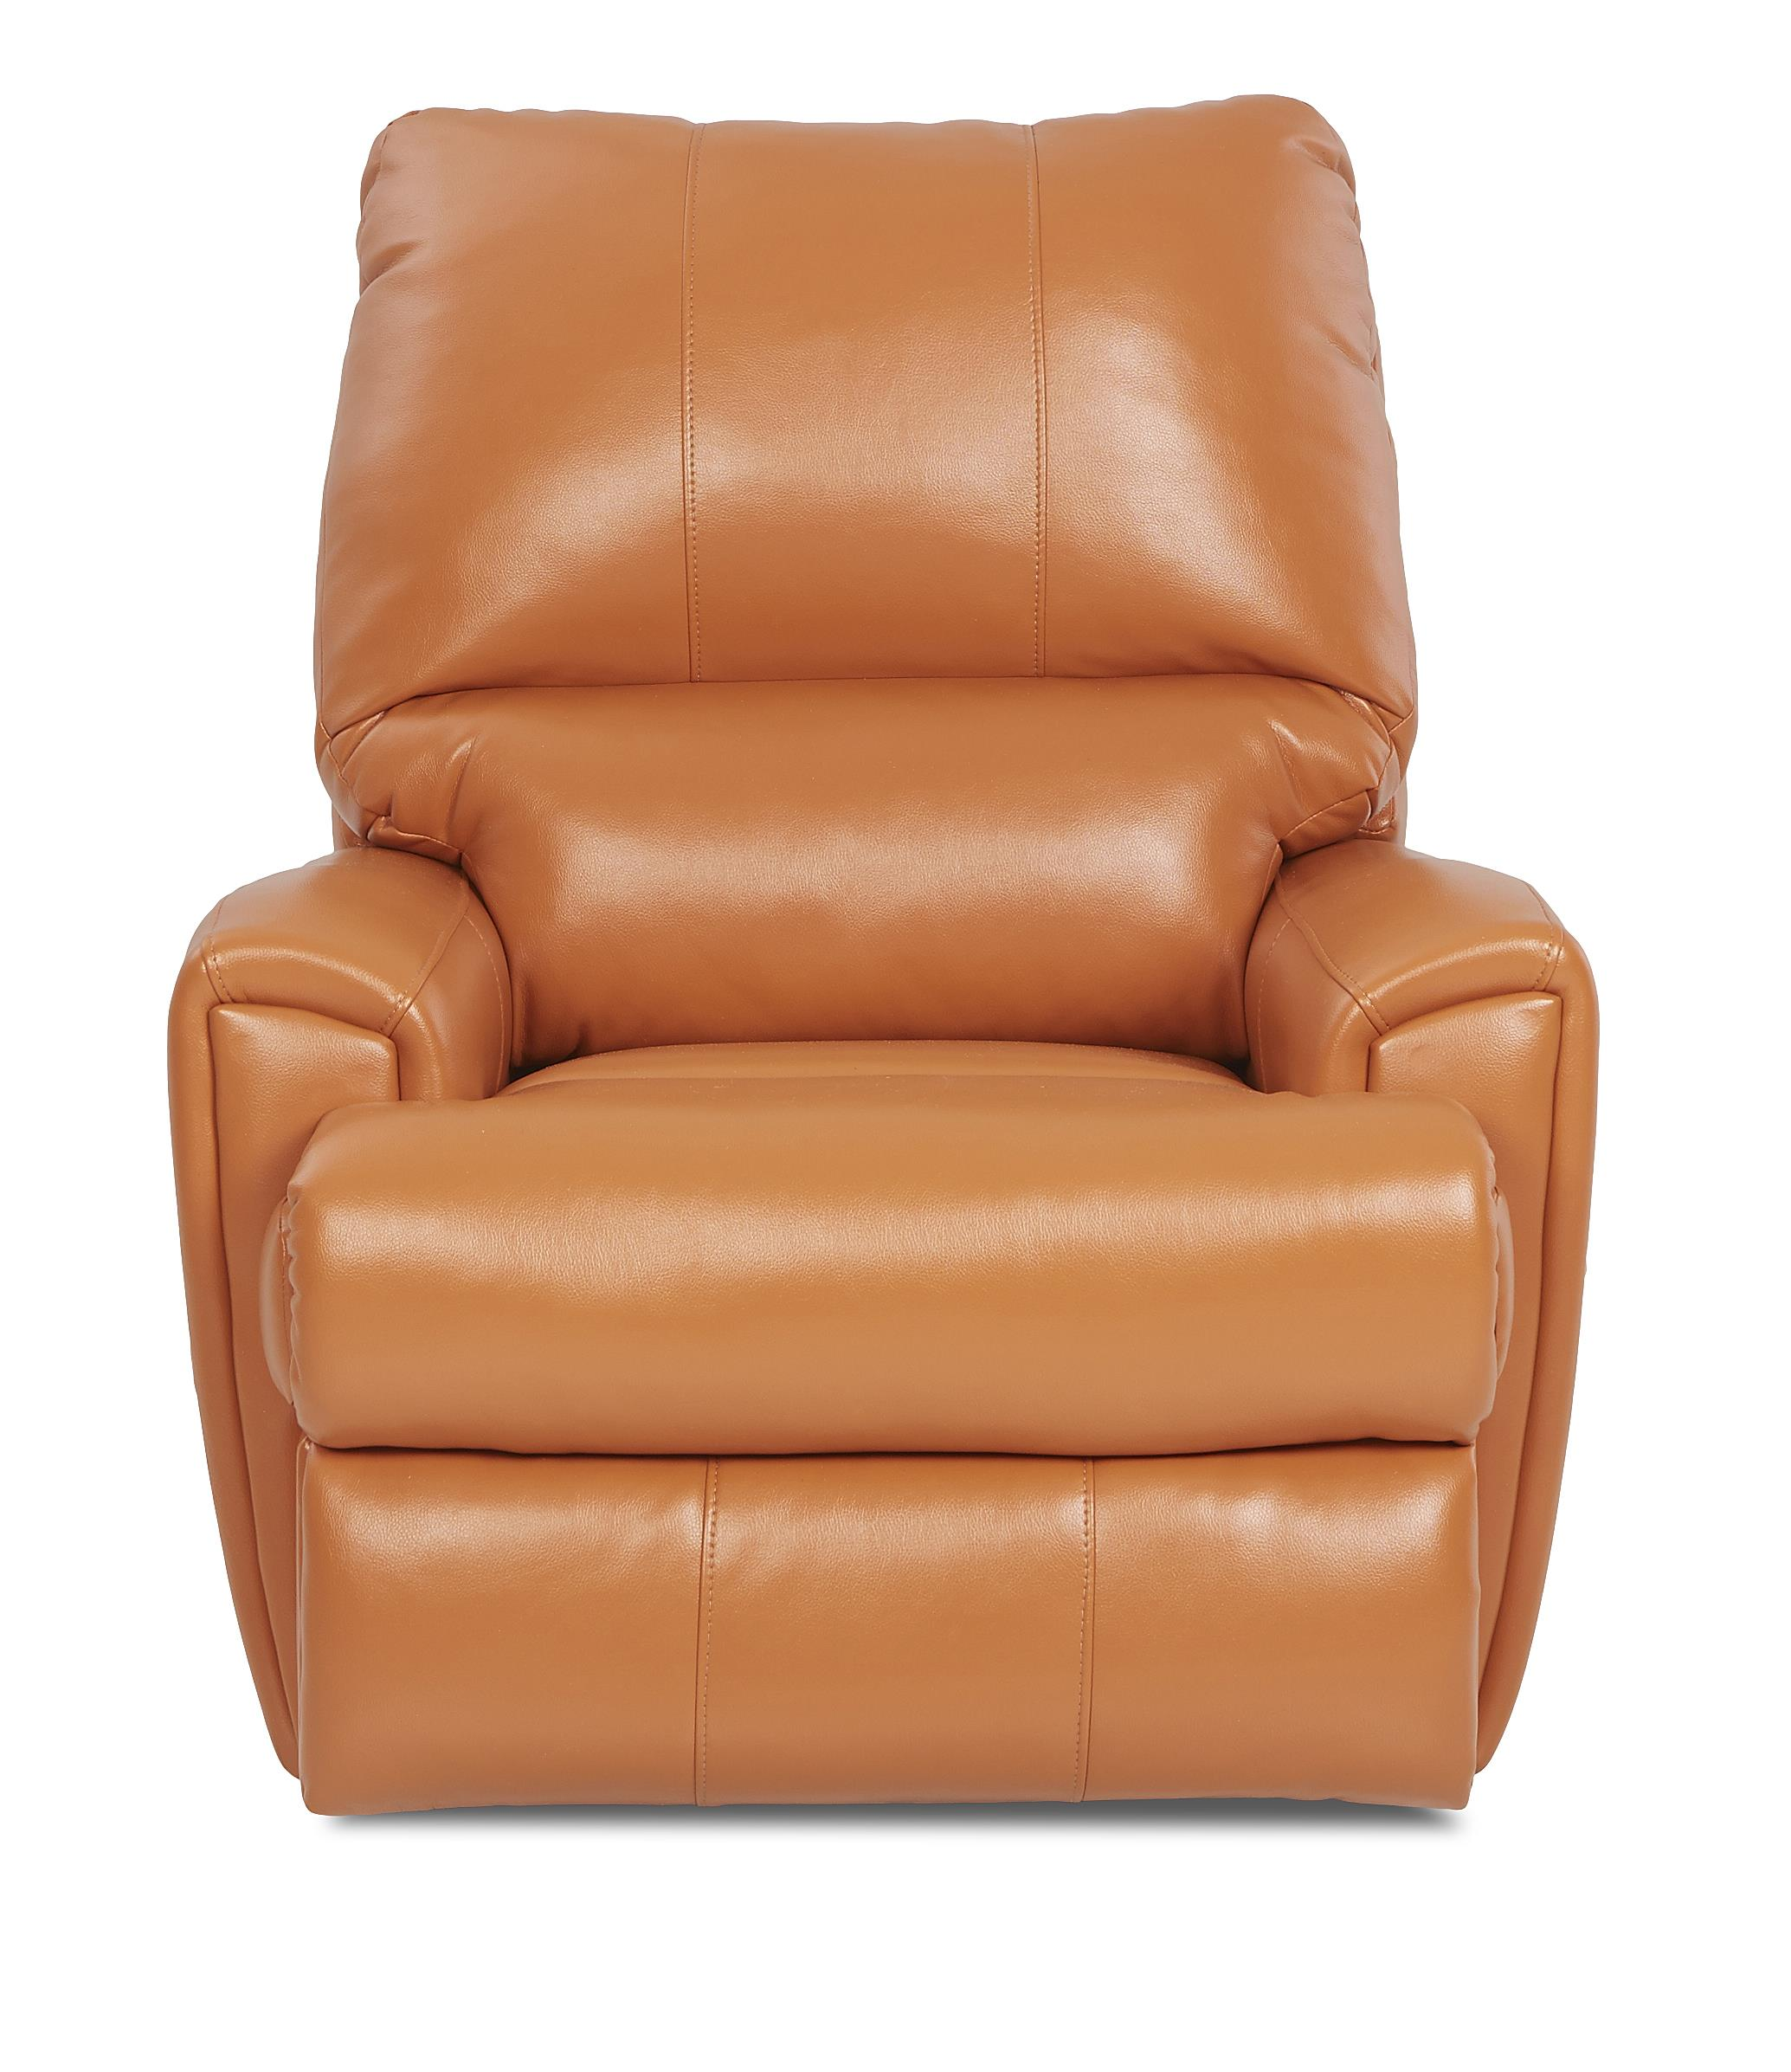 Klaussner Julio Transitional Reclining Rocking Chair - Item Number: 83143H RRC-JupiterSherbert